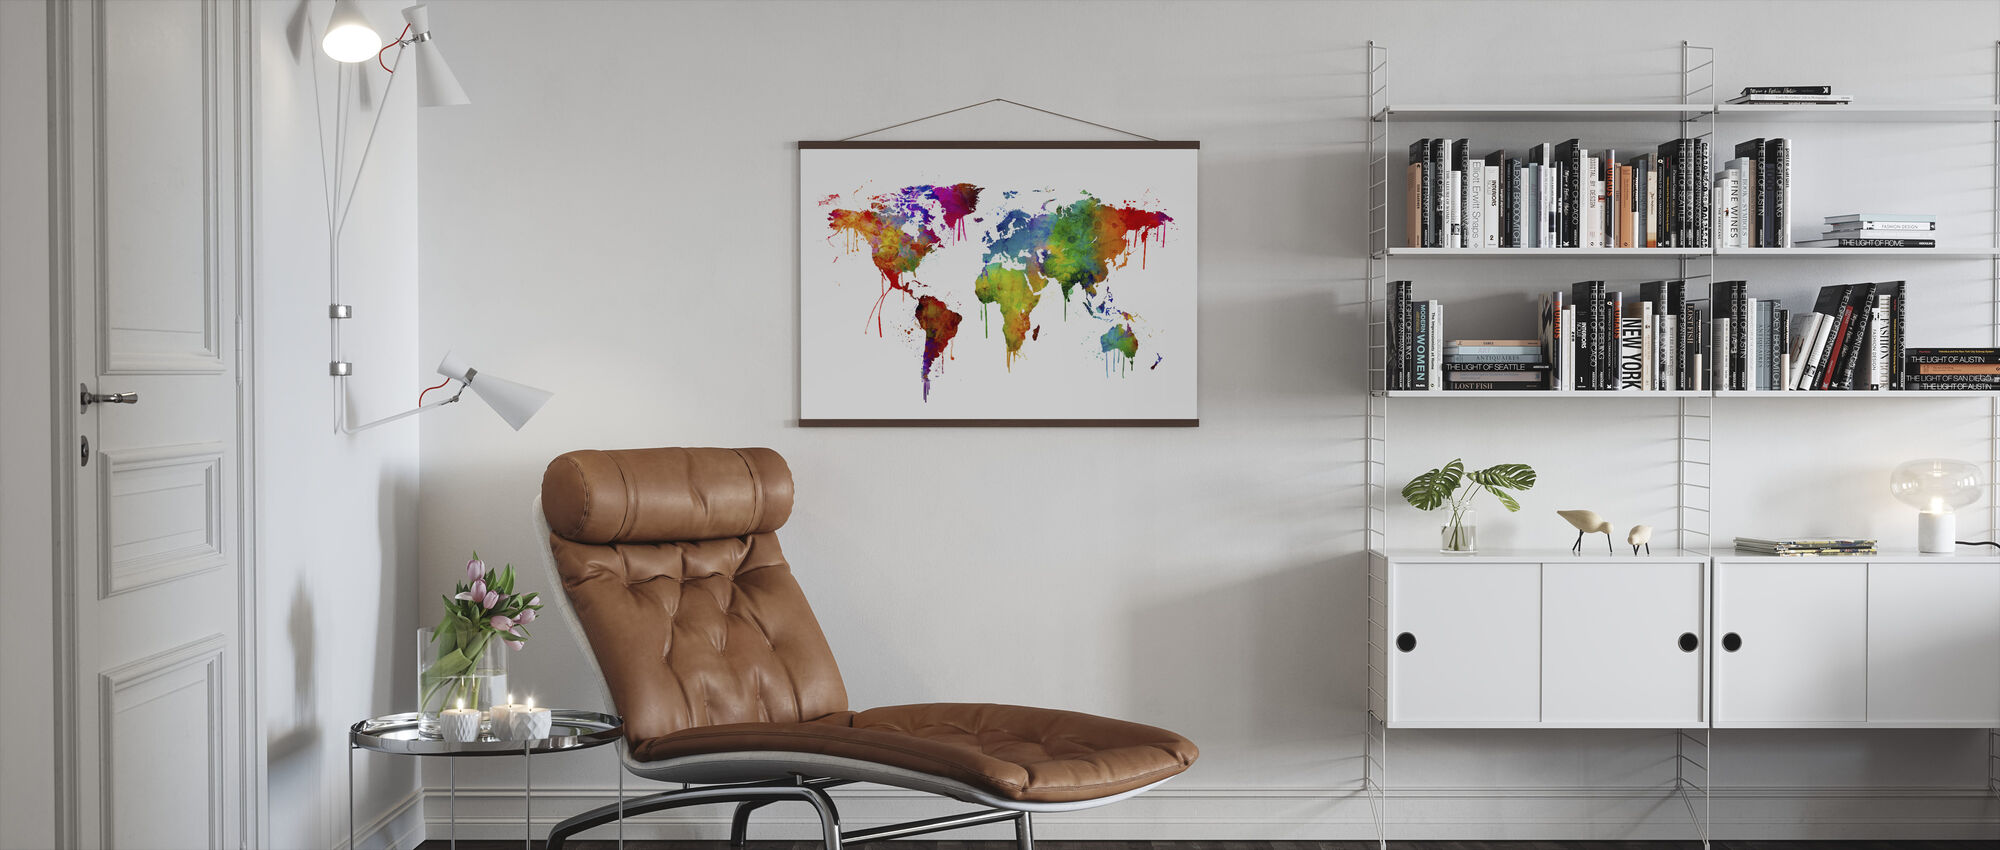 Watercolour World Map - Poster - Living Room